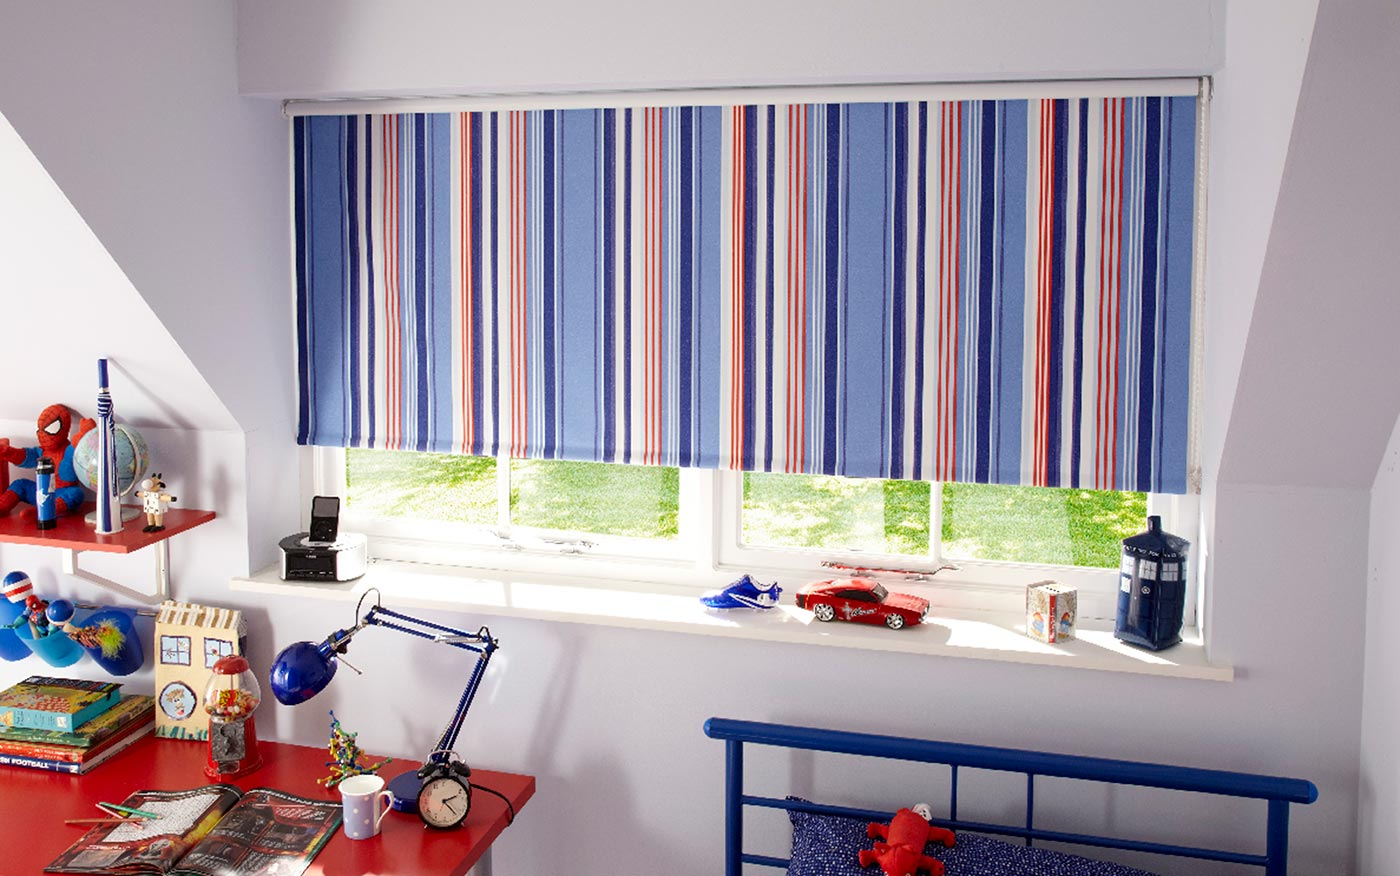 KASURI BLUE BLACKOUT BLINDS